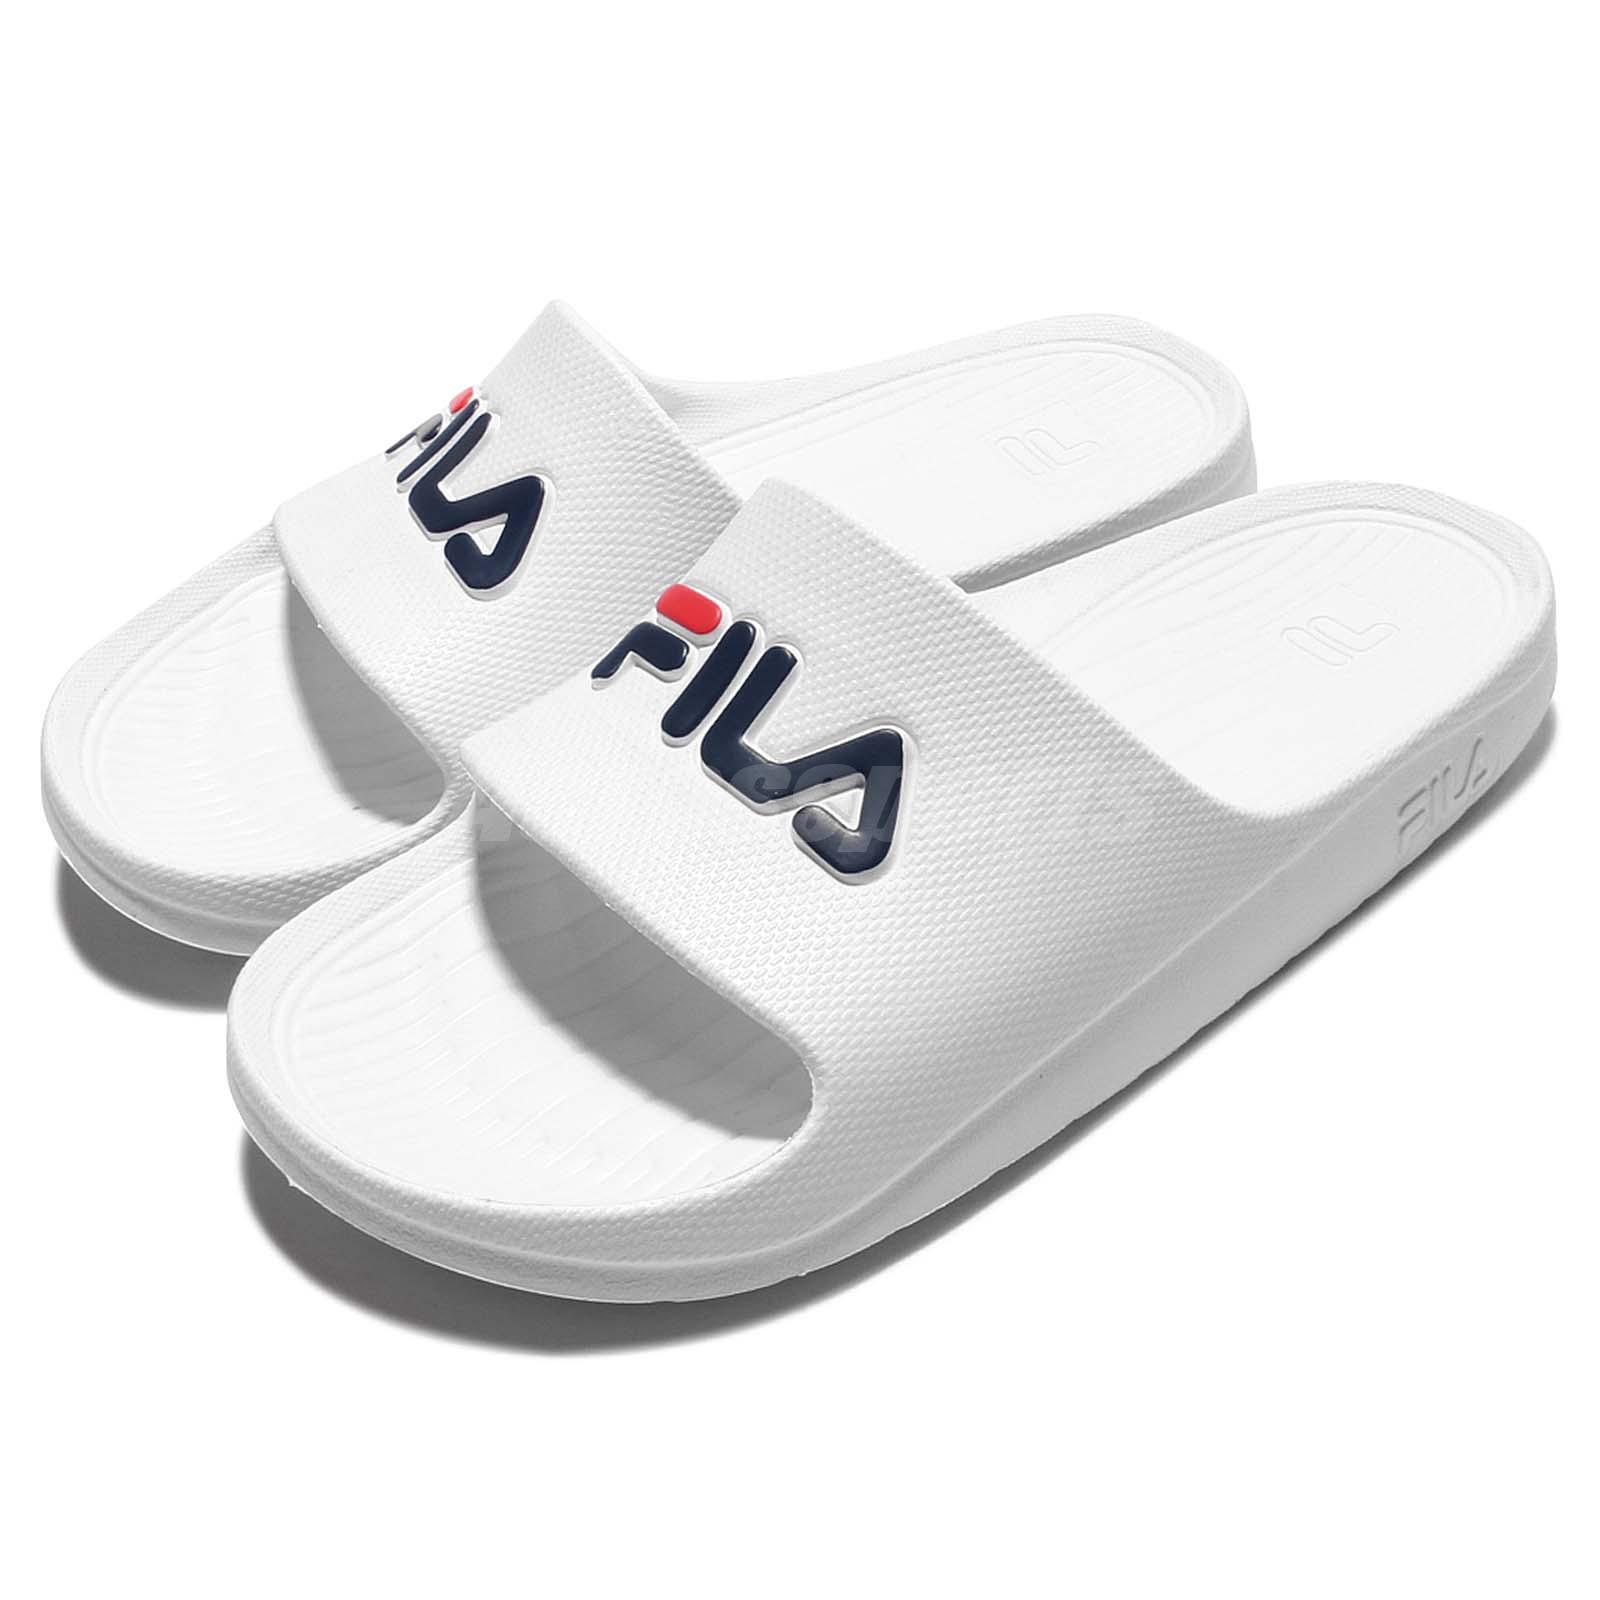 Shipping To China >> Fila S355Q Solid All White Navy Red Men Sport Sandal Slides Slippers 4-S355Q-113 | eBay